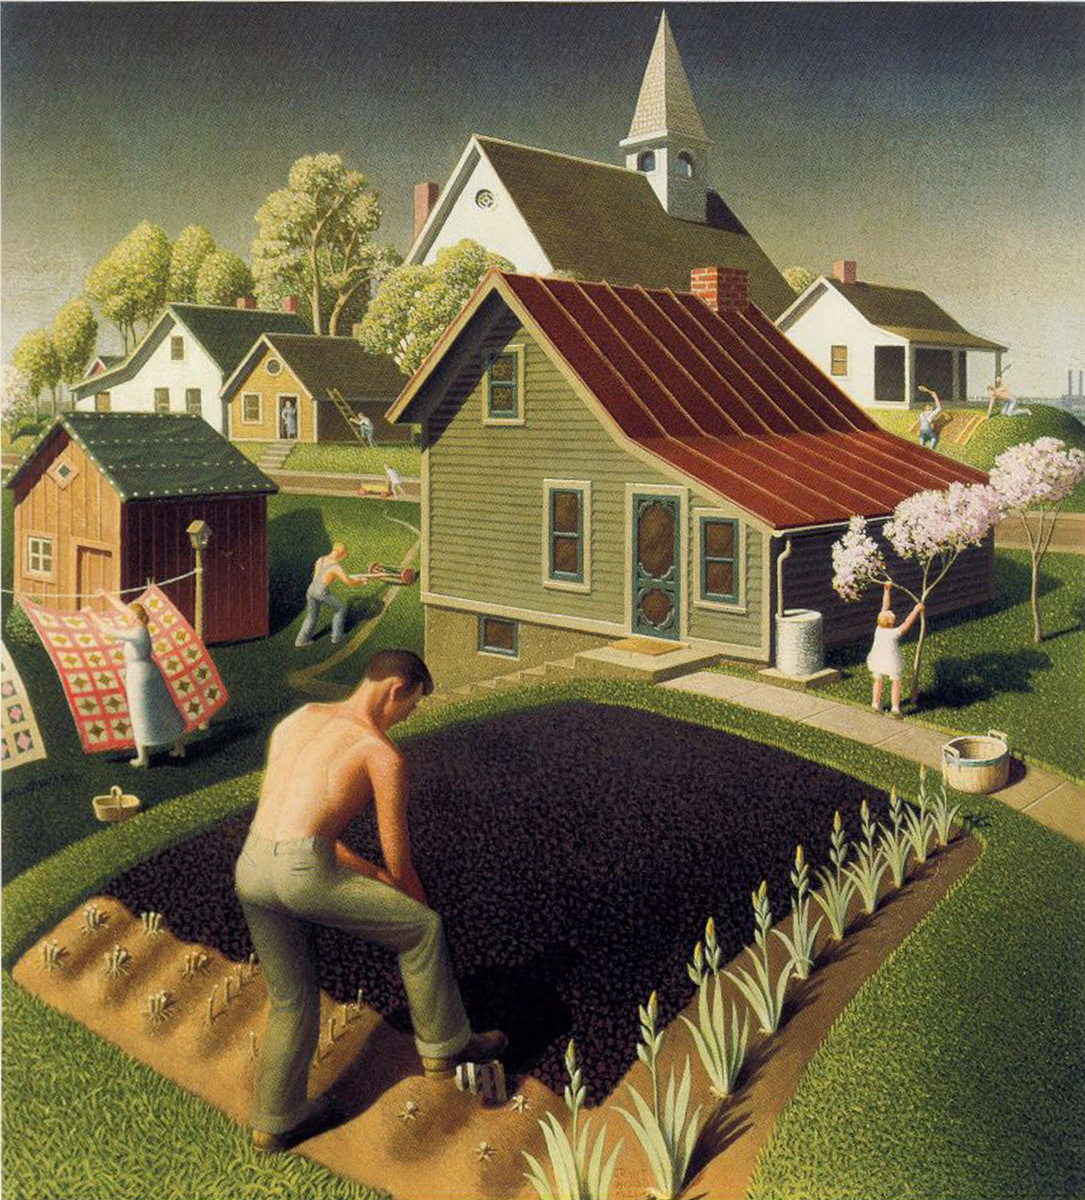 Grant Wood. Spring in the city